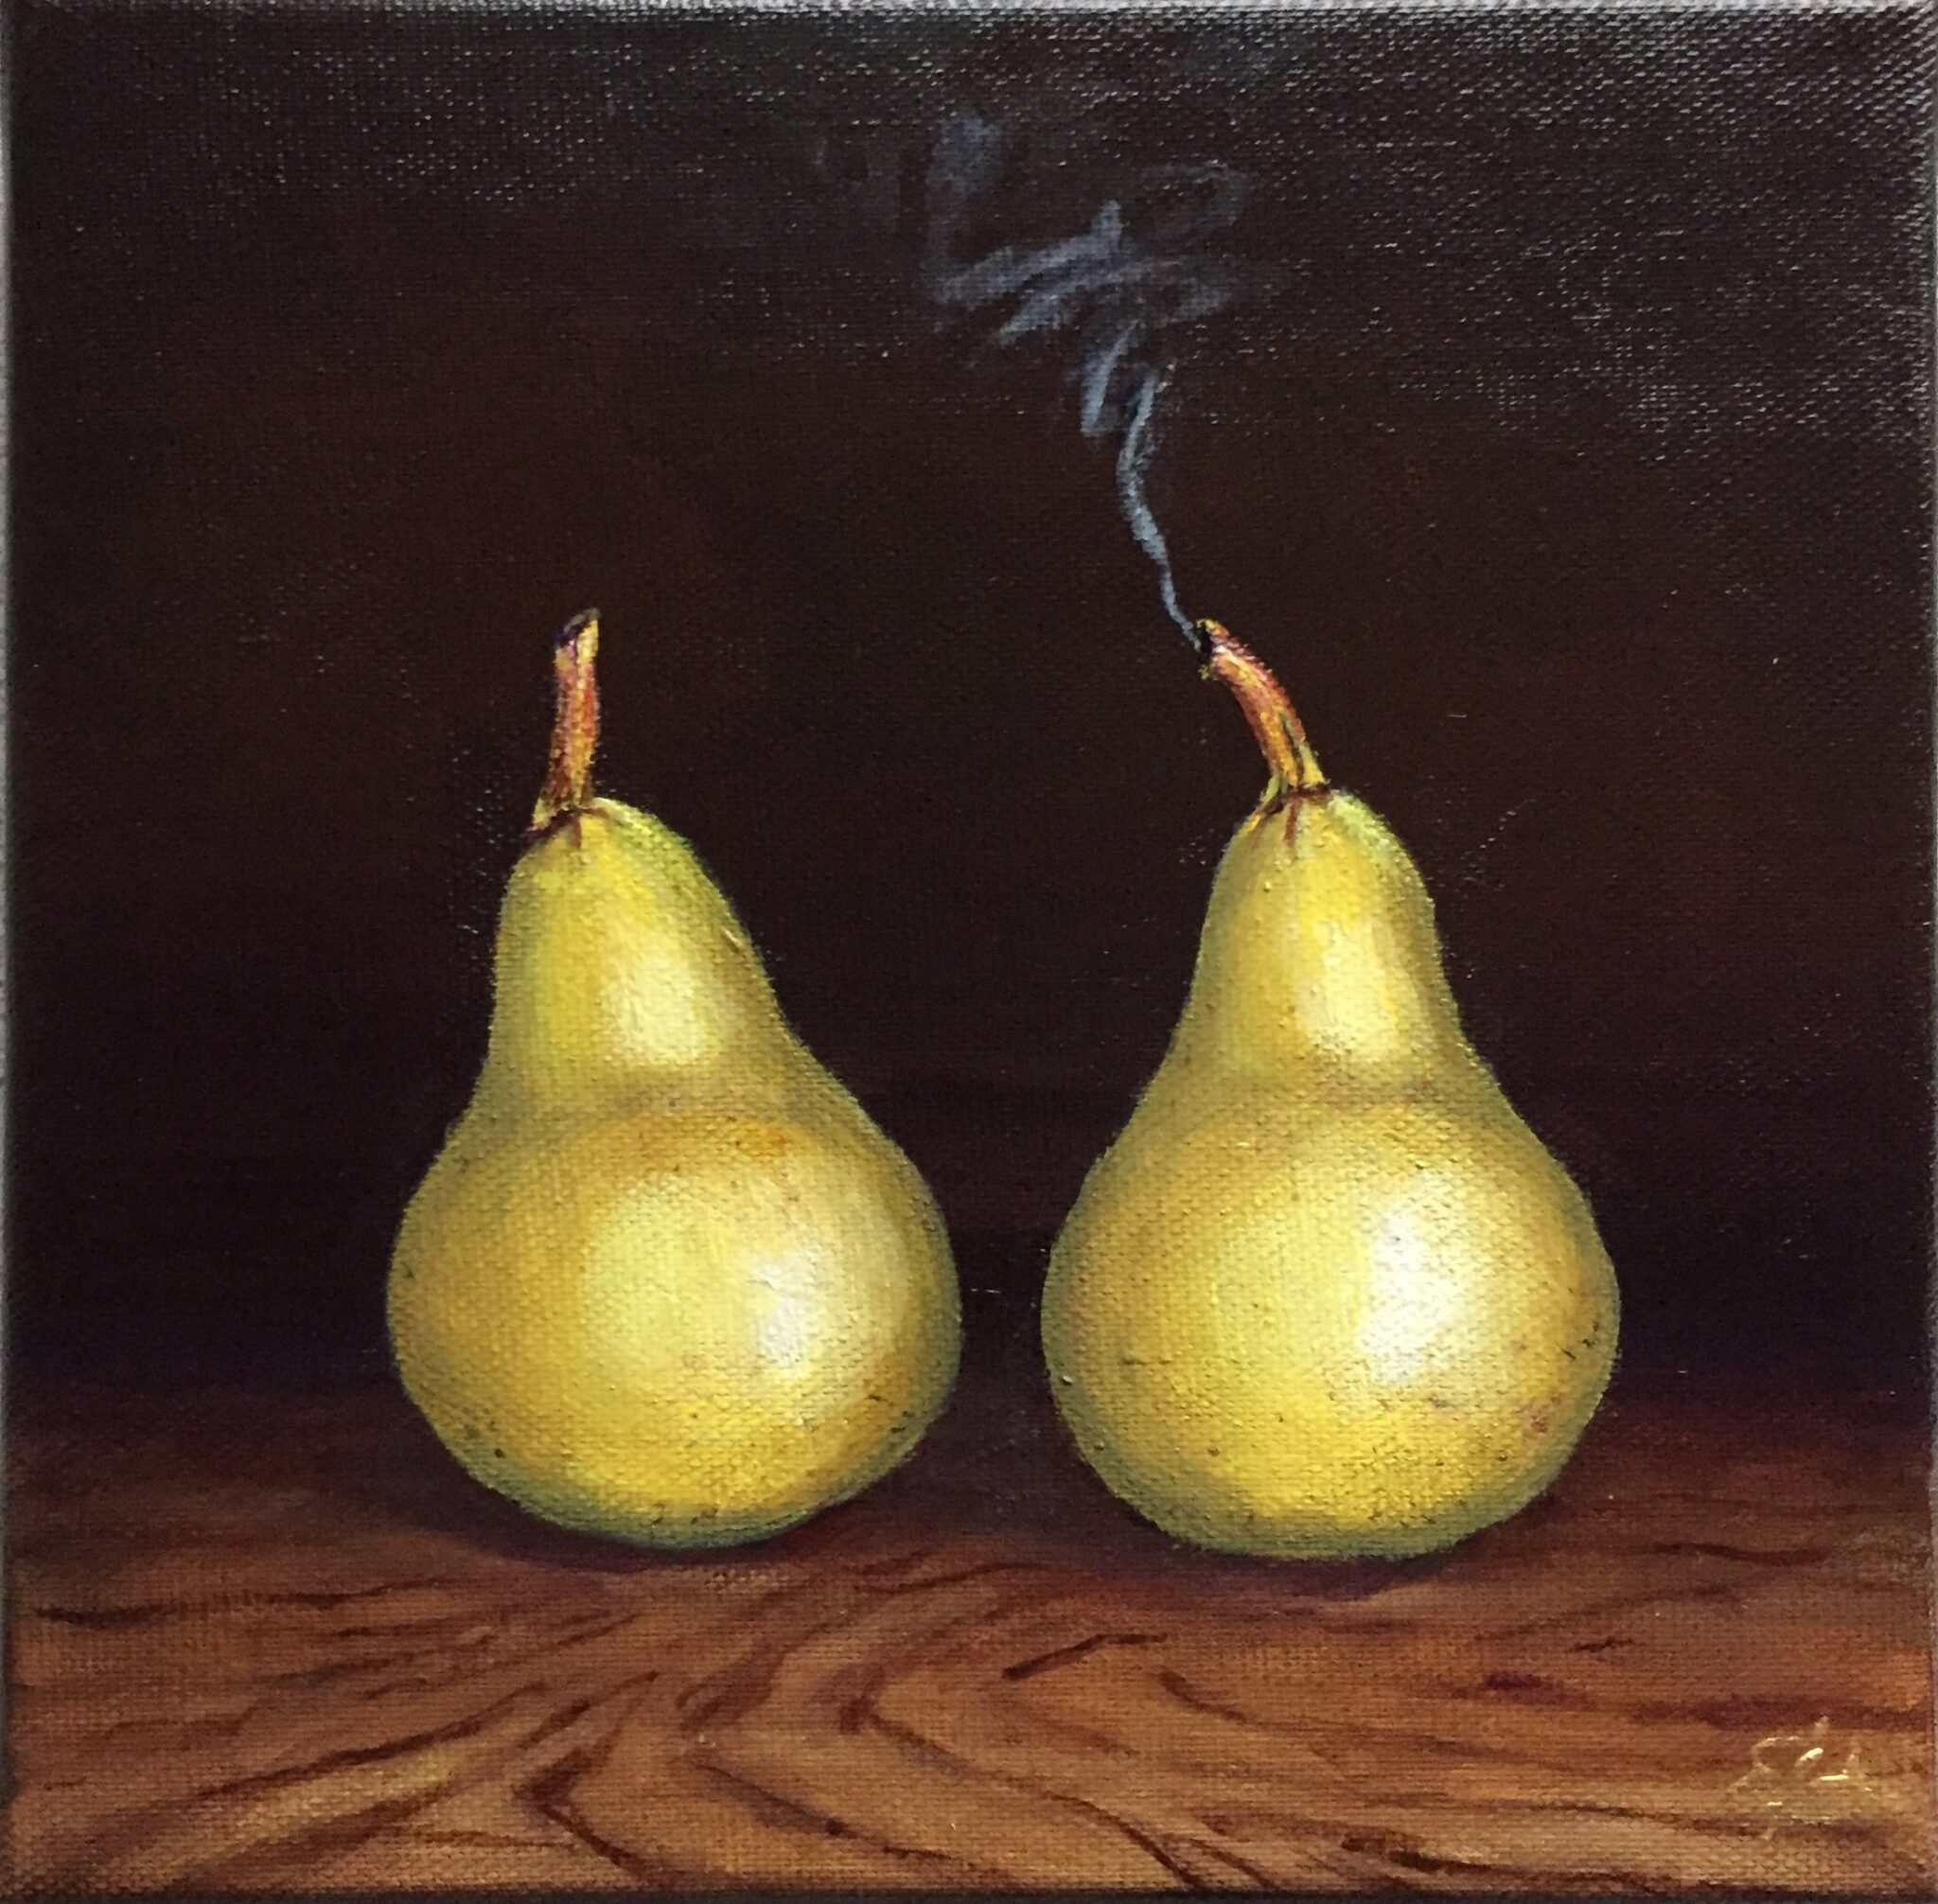 Smoked pears surrealistic